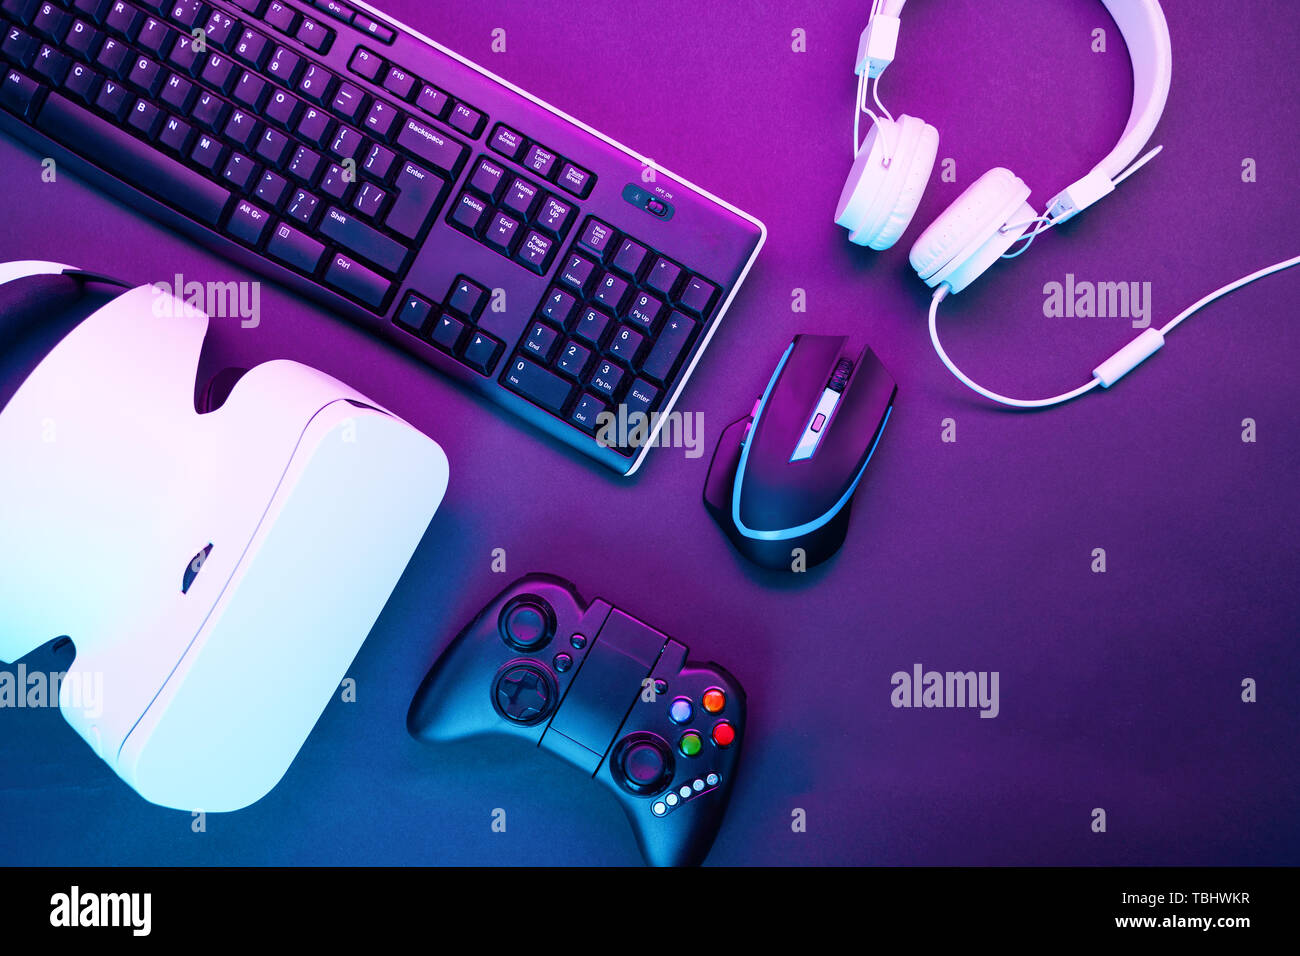 Keyboard, mouse, gamepad, virtual reality headset and